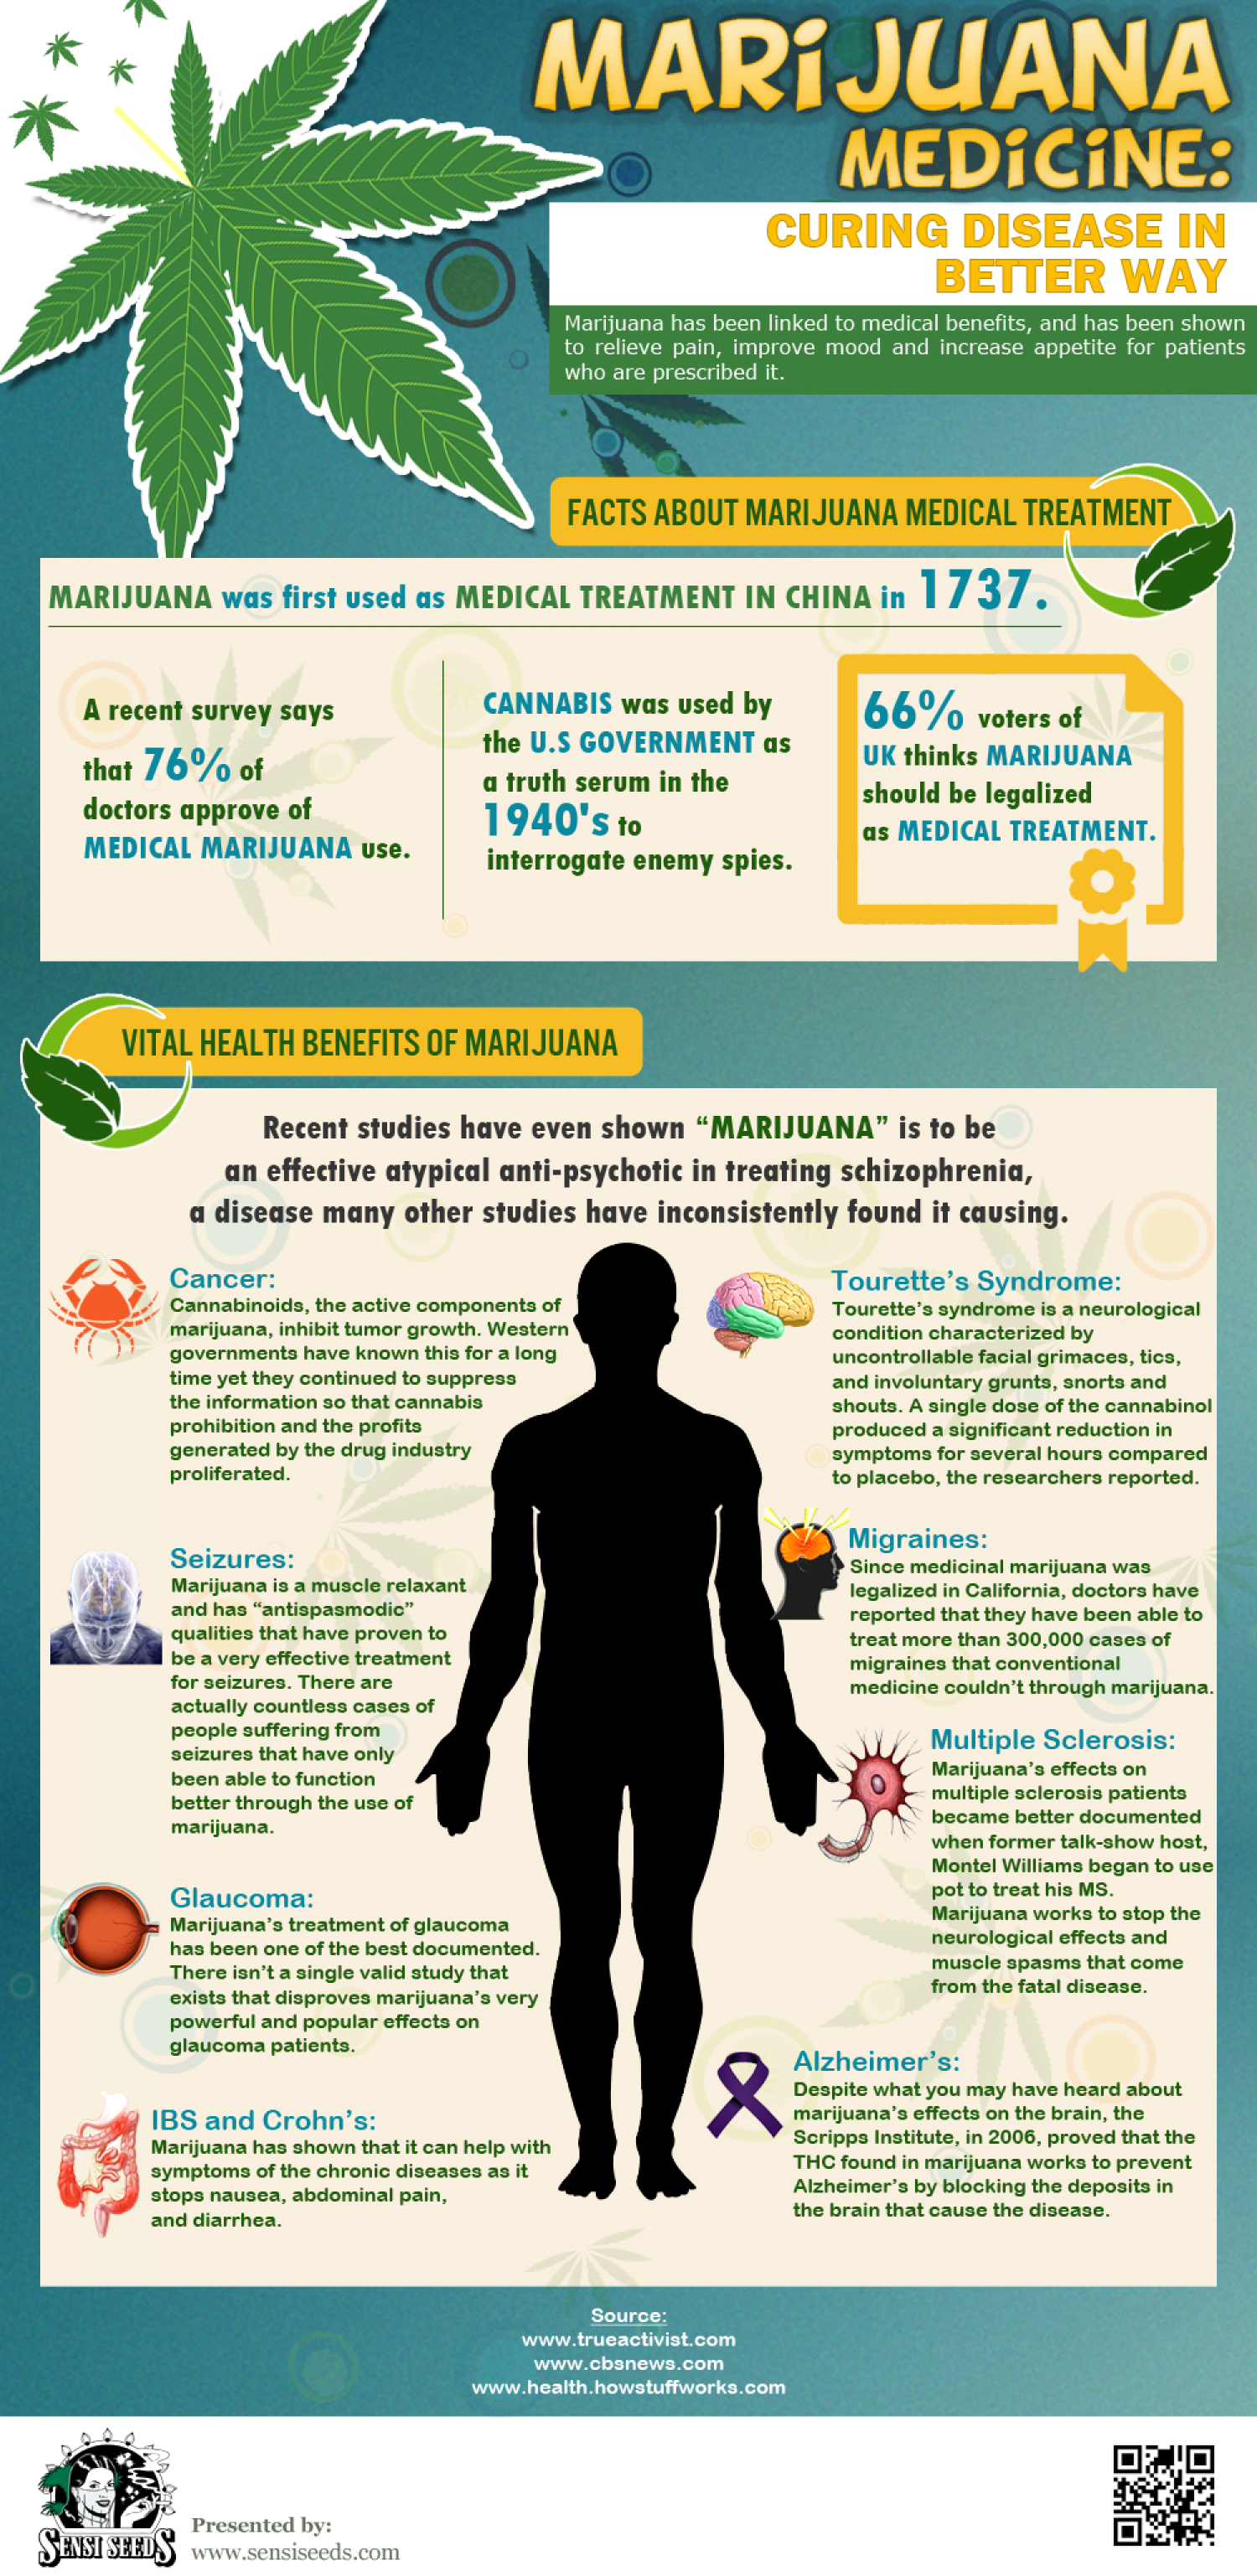 Marijuana Medicine: curing disease in a better way Infographic